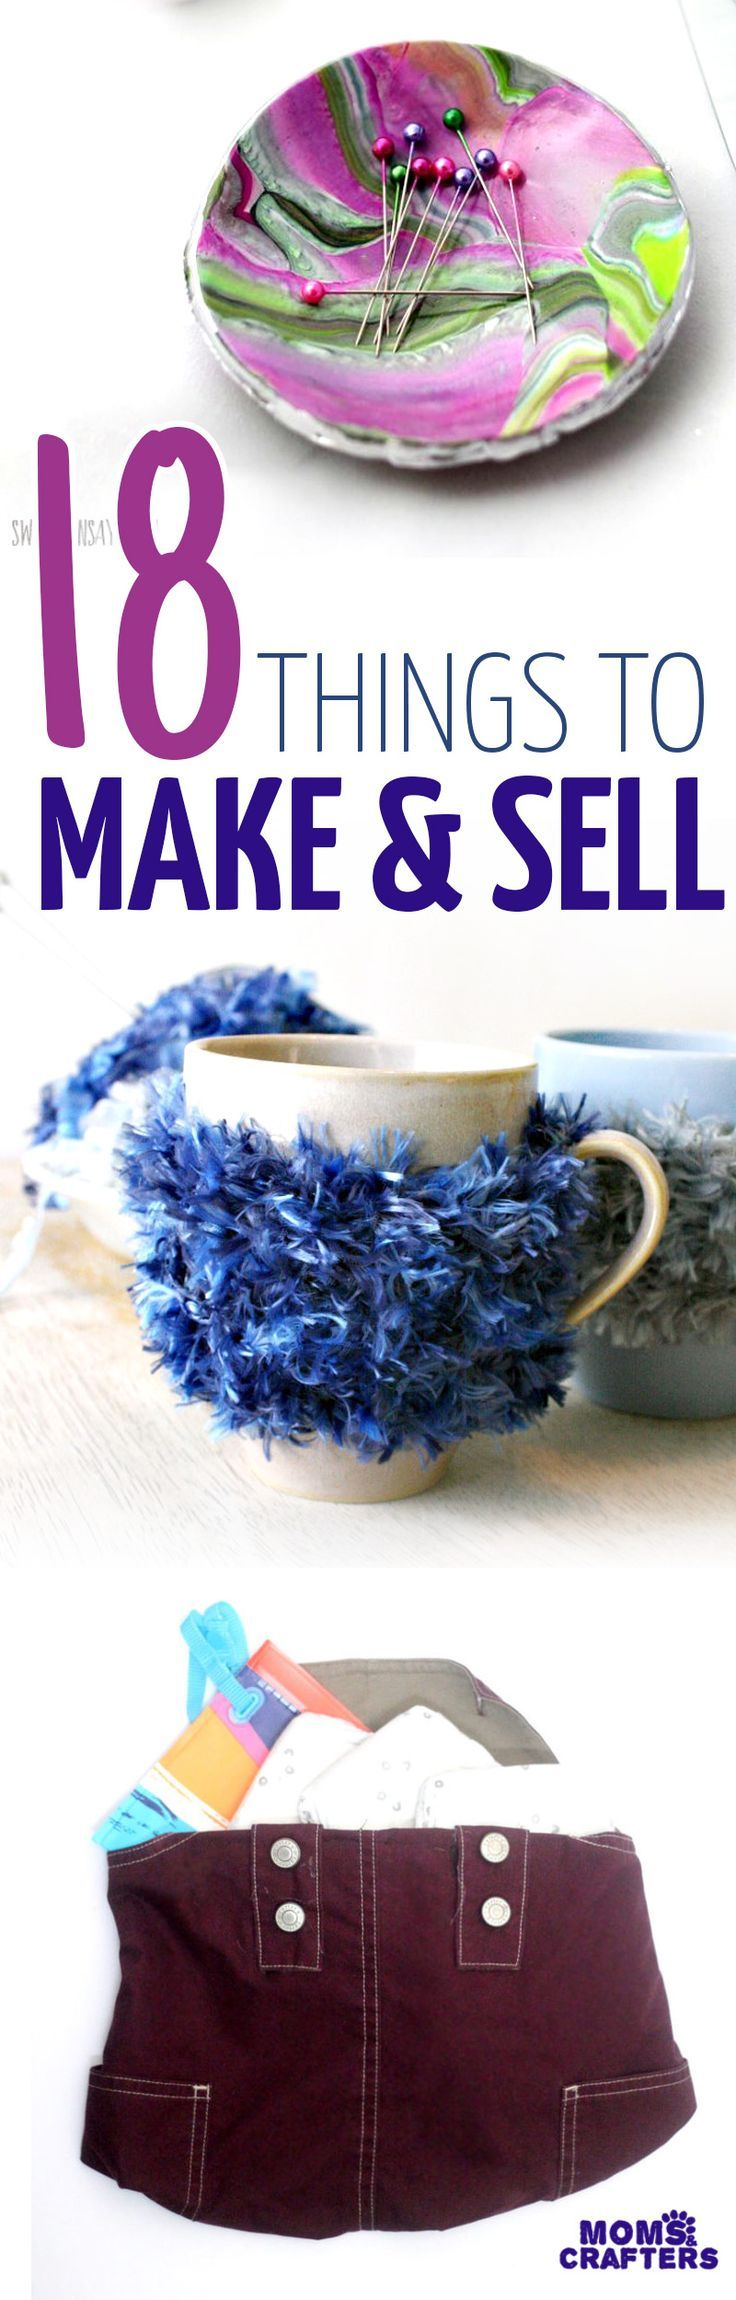 1122 best diy for mom images on pinterest backyard ideas for Best things to make and sell from home